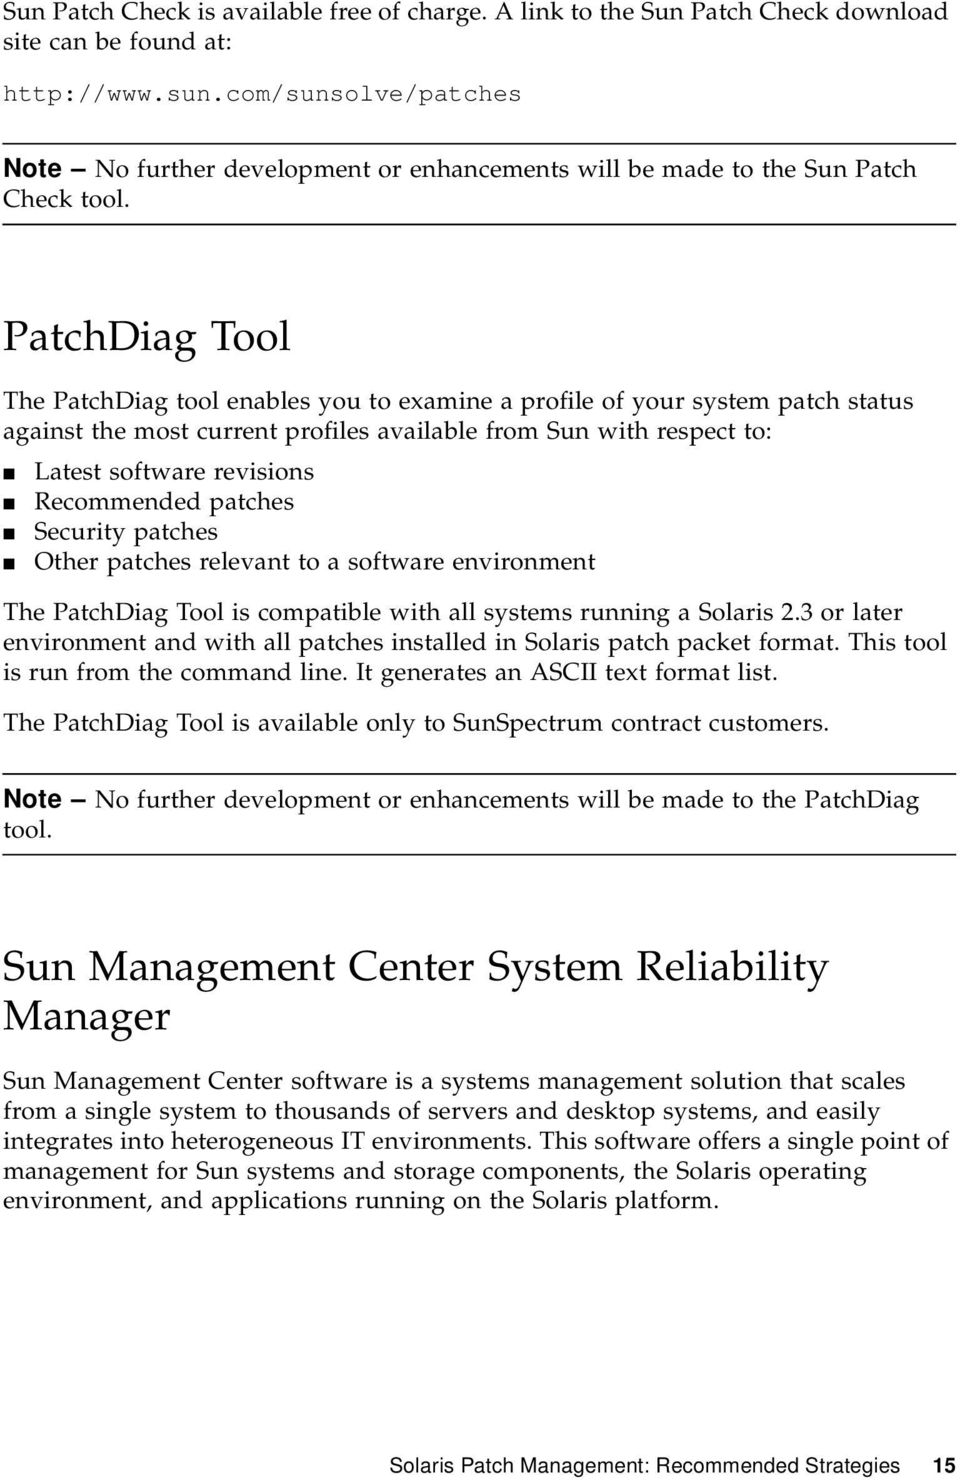 PatchDiag Tool The PatchDiag tool enables you to examine a profile of your system patch status against the most current profiles available from Sun with respect to: Latest software revisions